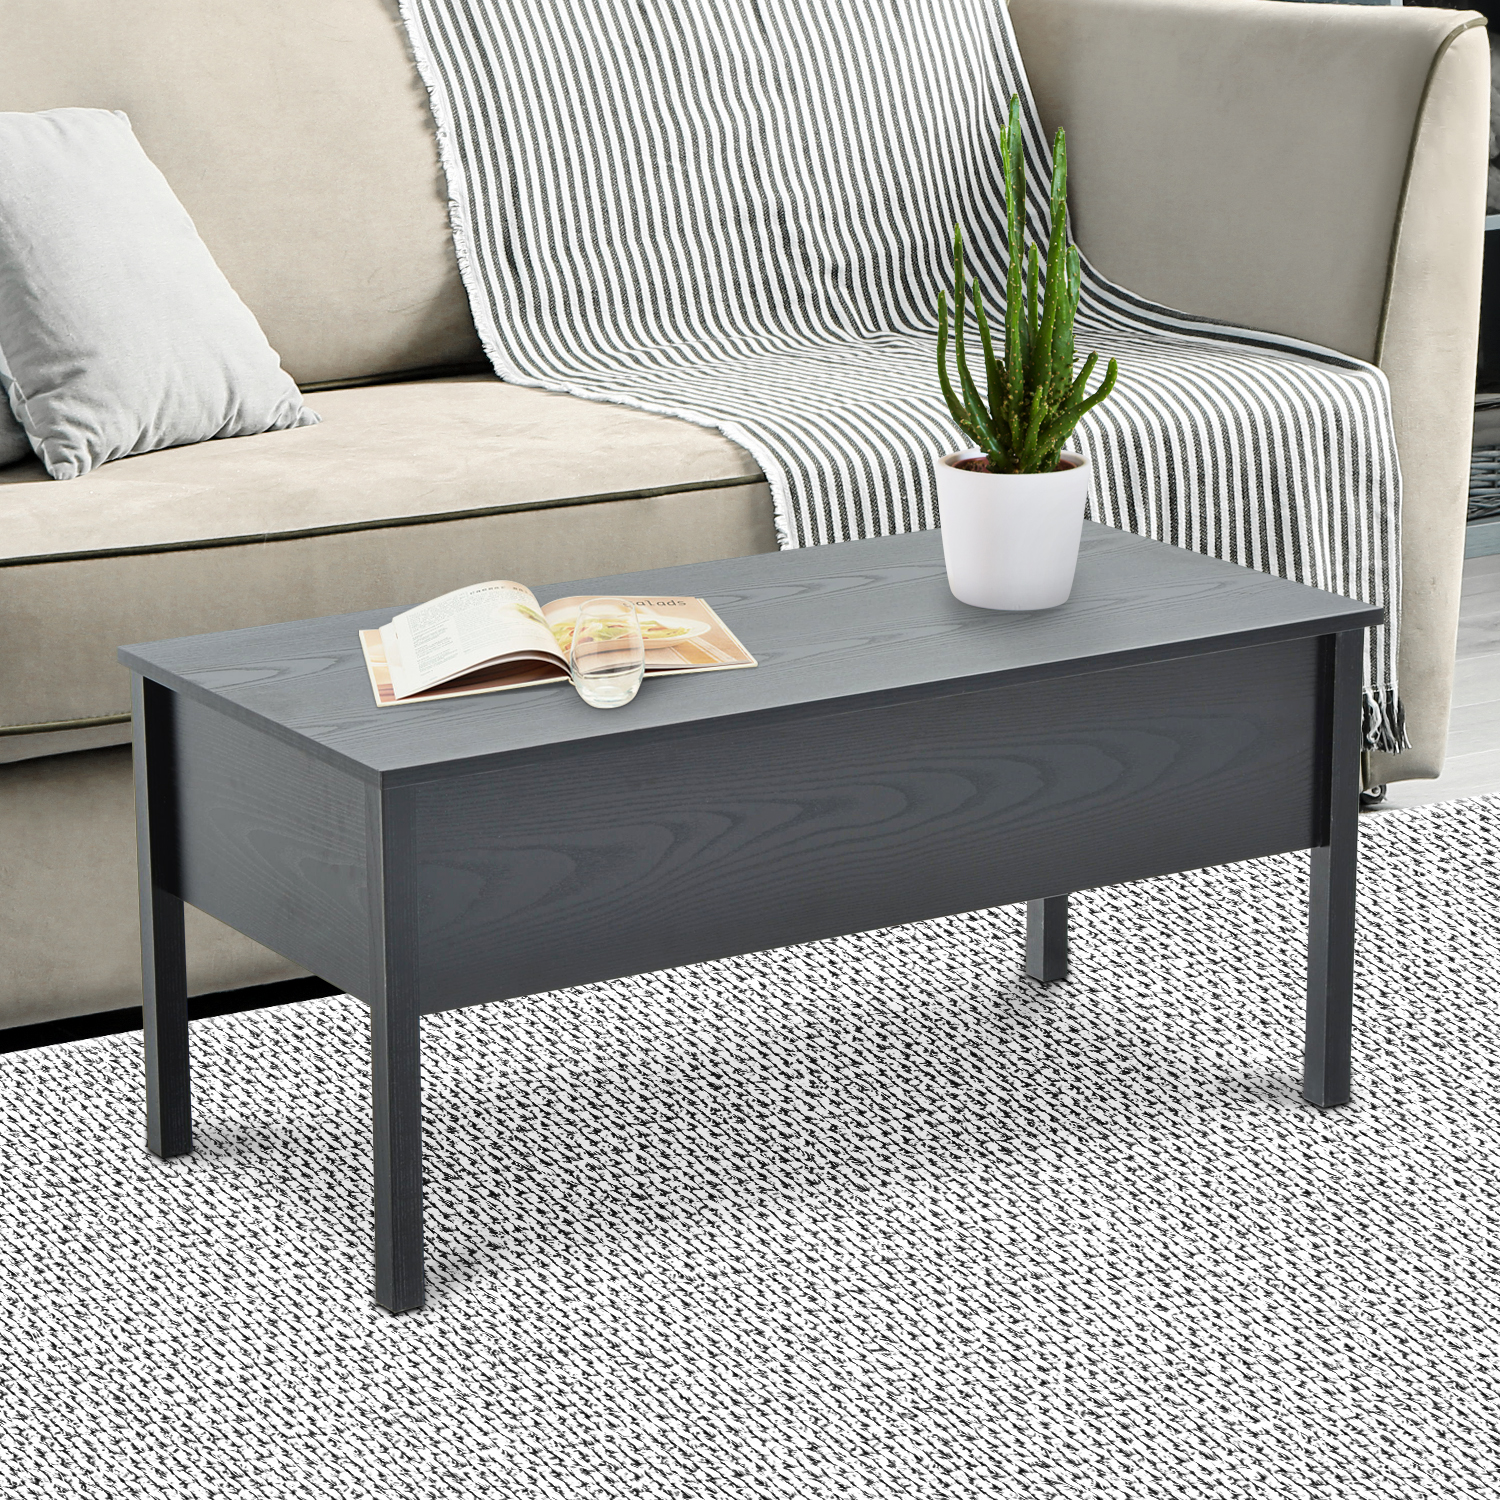 Coffee Table Extendable Top.Details About 39 Modern Lift Top Coffee Table Extendable Floating Desk Hidden Storage